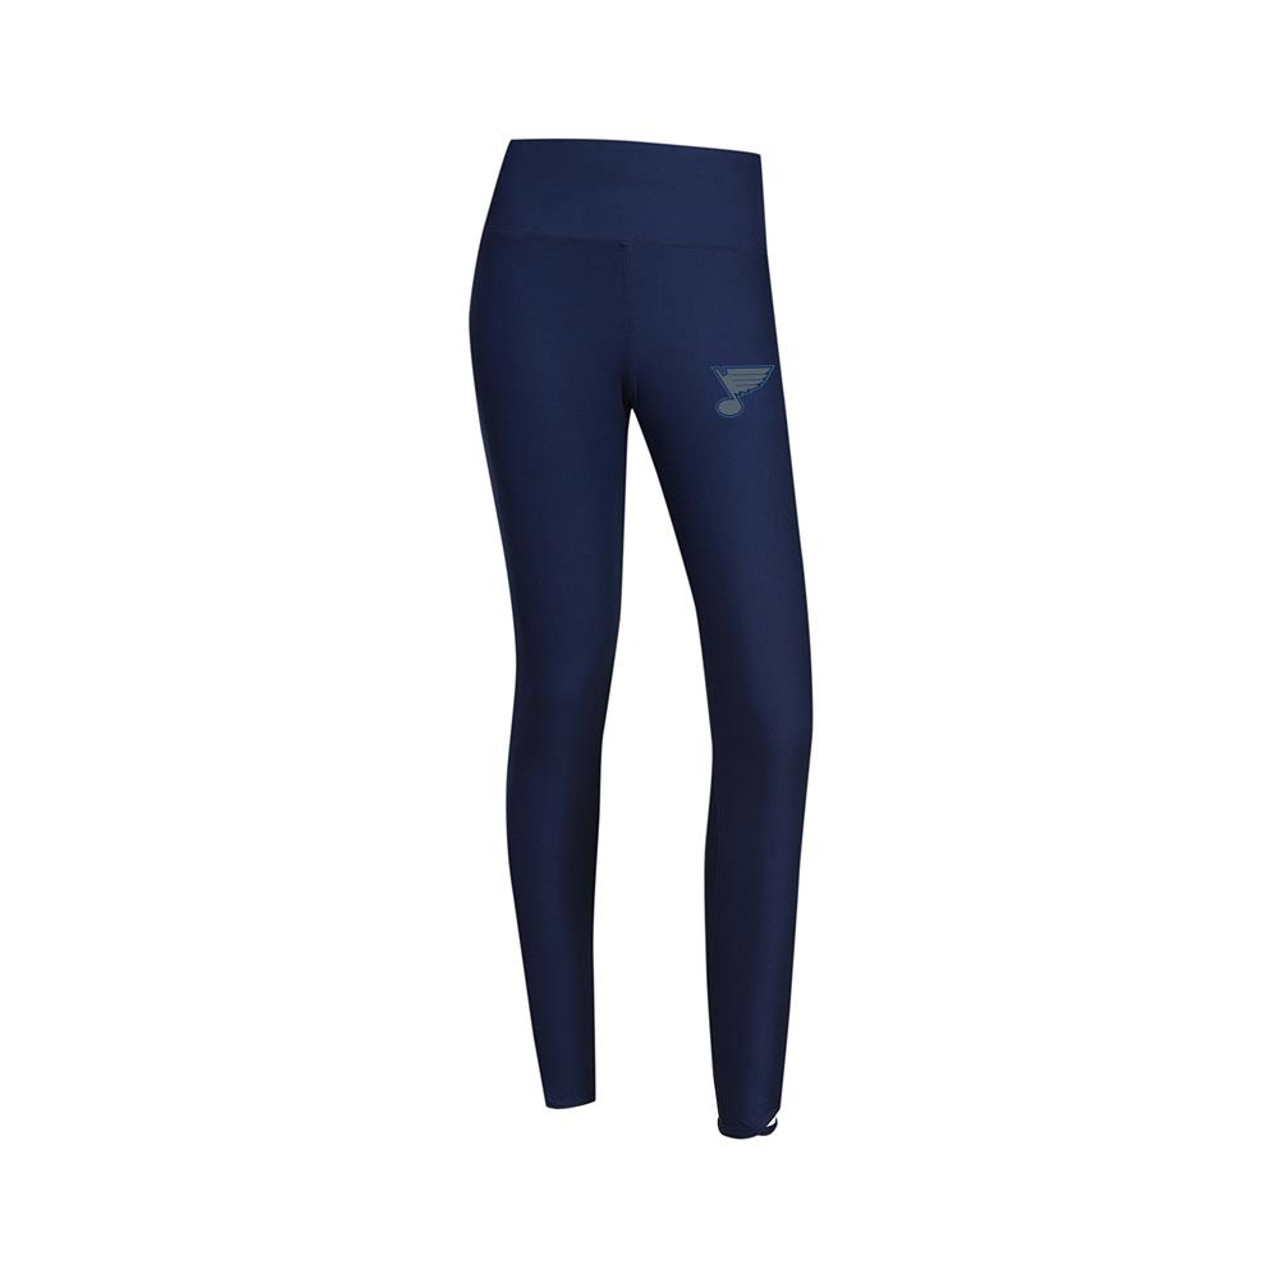 bdc8dd56ec12df Saint Louis Blues St Ladies' Leggings Fortitude Yoga Pants